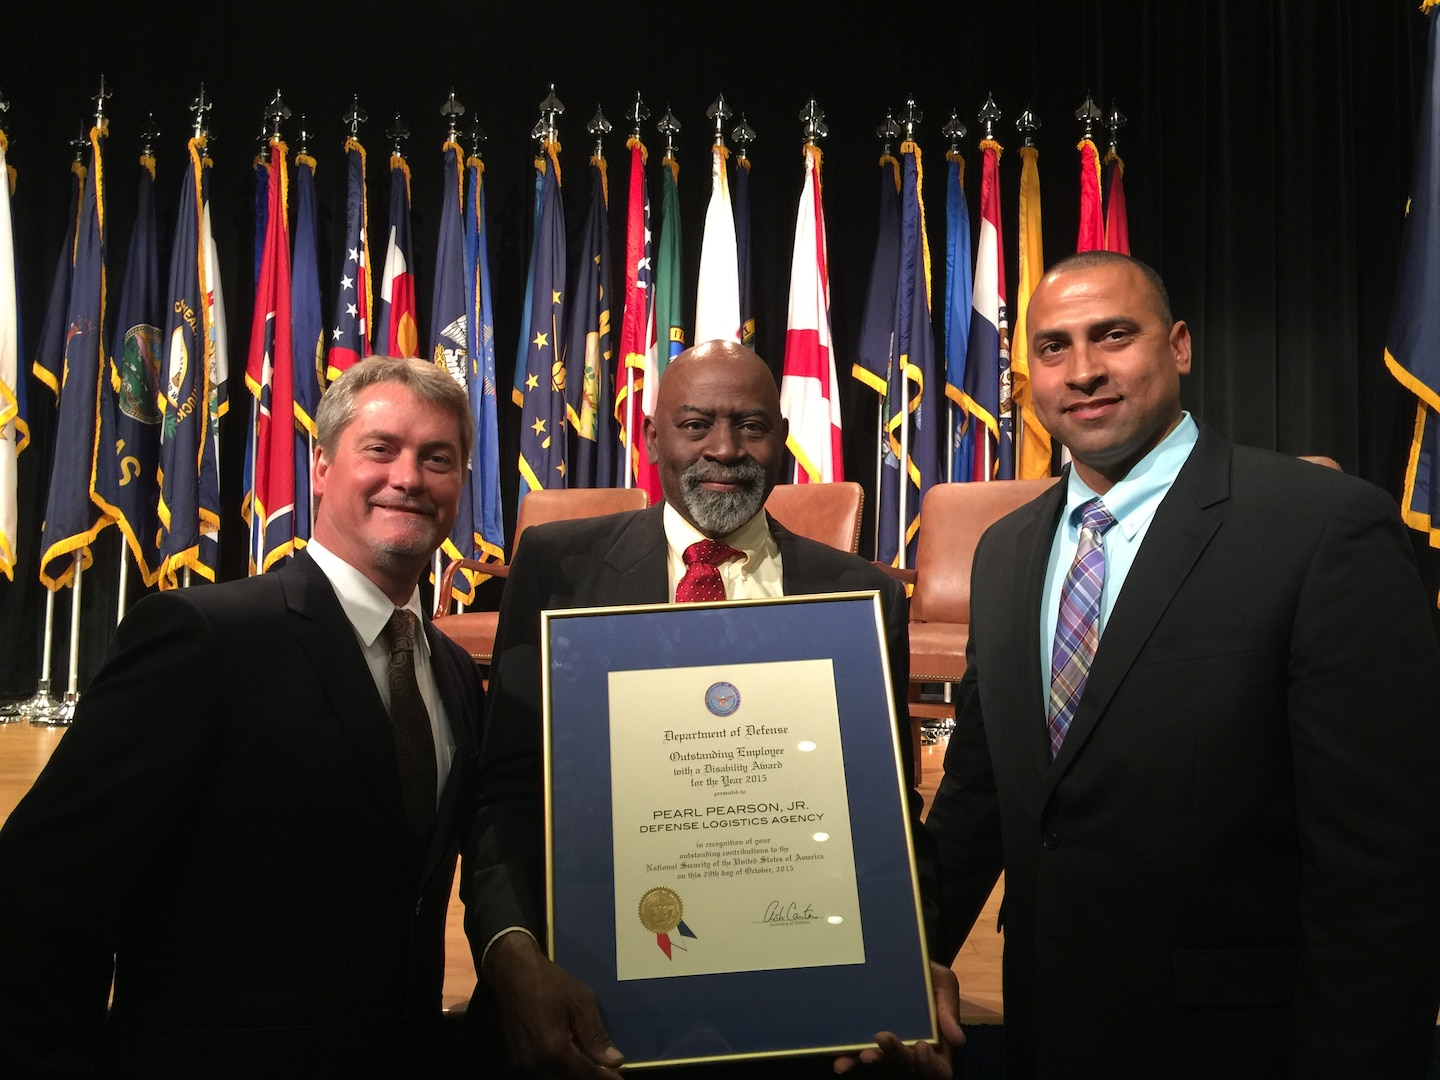 Terry Phillips and Dack Pearson, Pearl Pearson's son, pose with Pearson at the 35th annual Department of Defense Disability Awards ceremony held in the Pentagon Auditorium on Oct. 29.